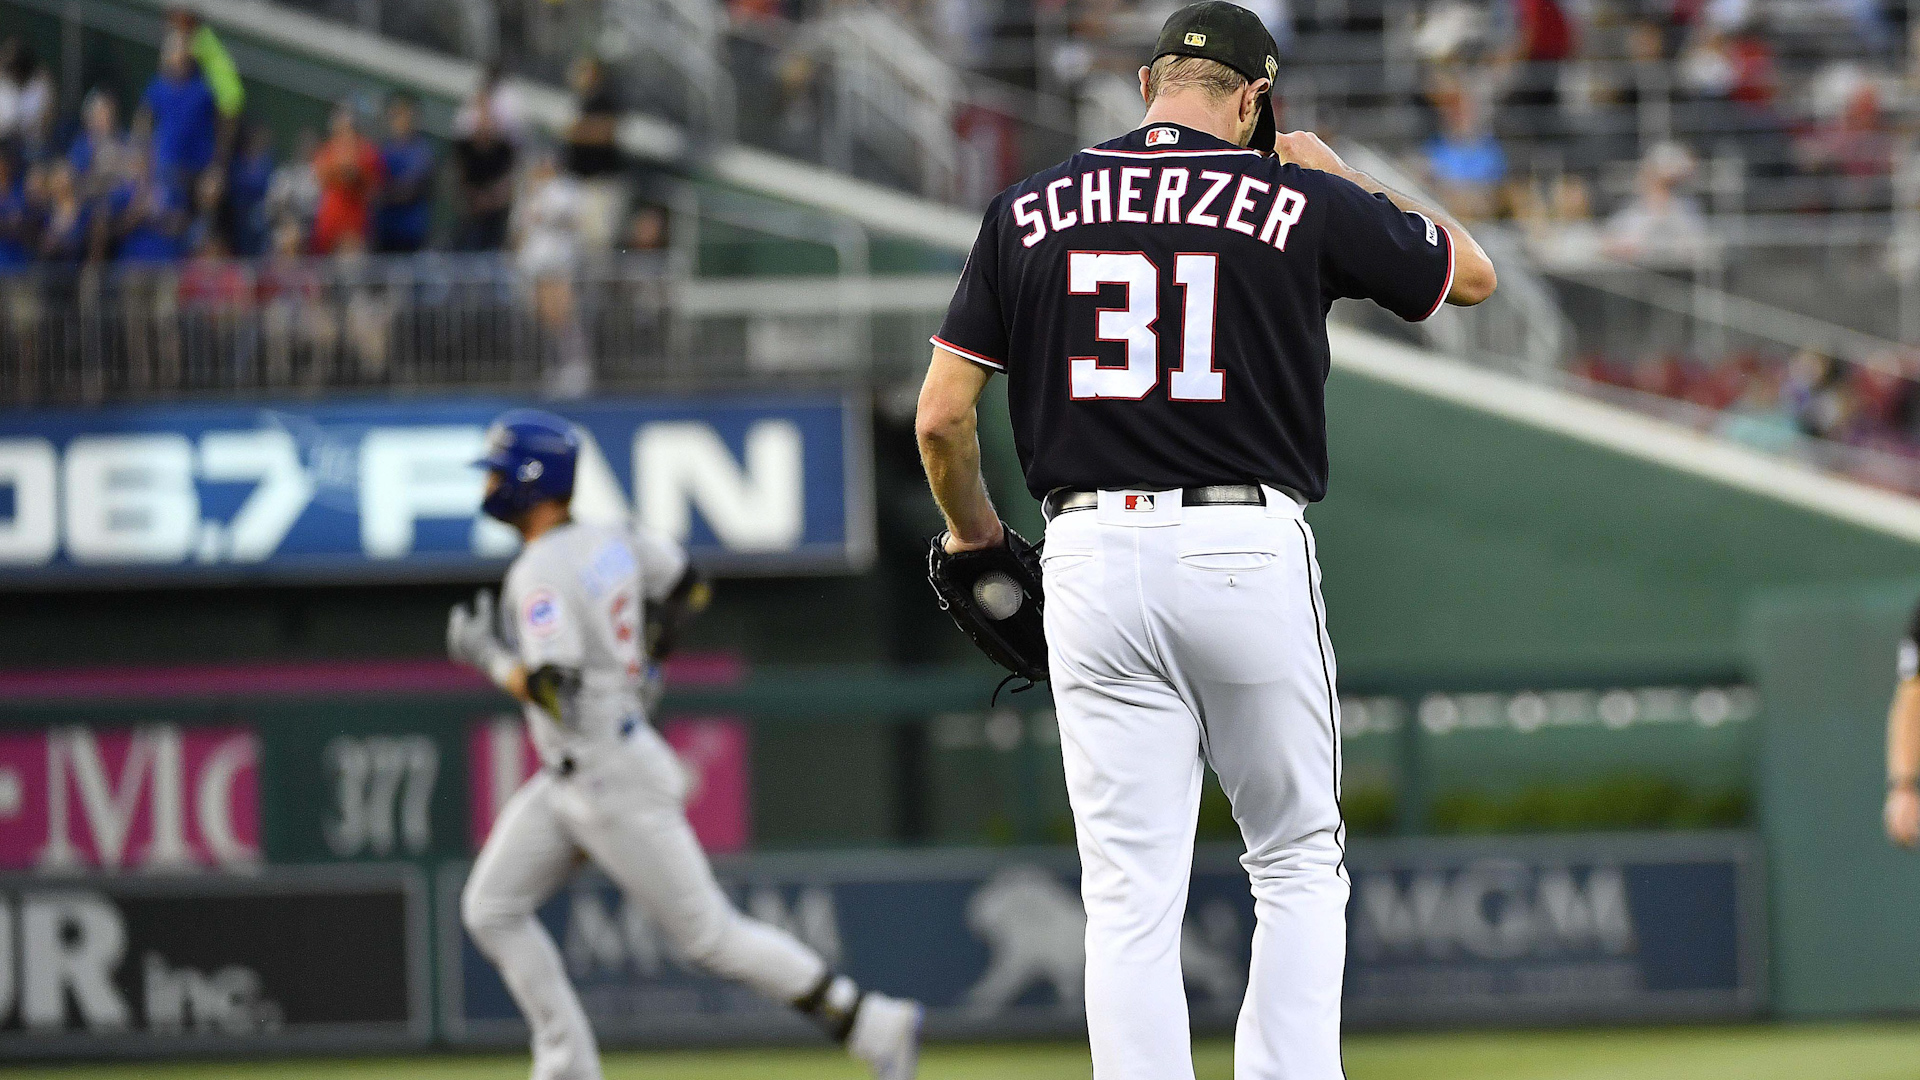 Max Scherzer has been consistent. The offense, not so much.